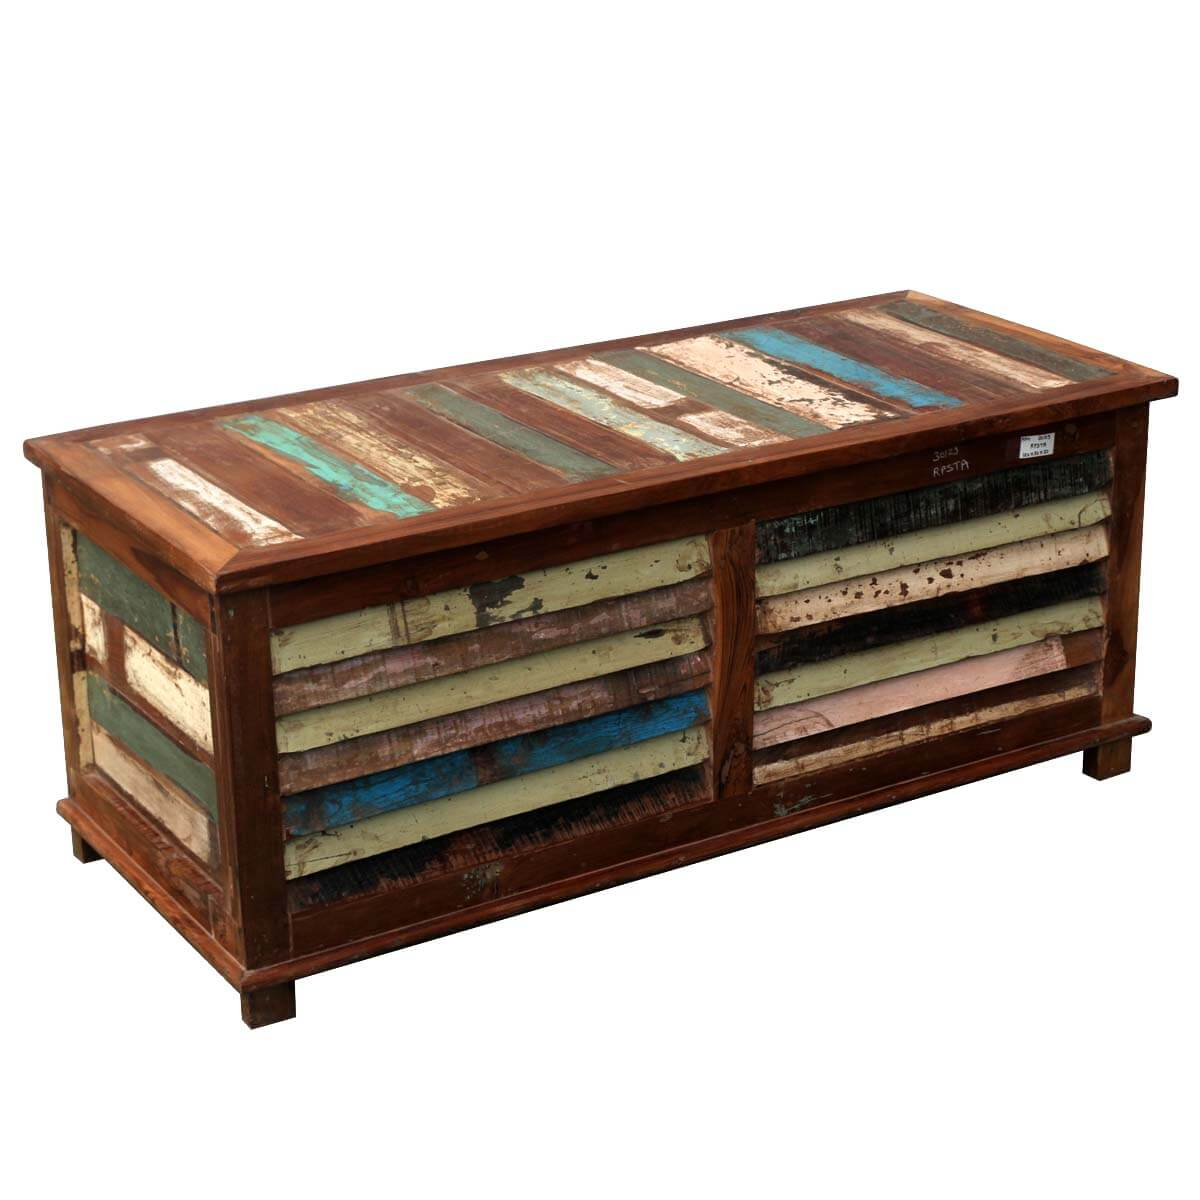 Rustic reclaimed wood multi color coffee table storage trunk chest Recycled wood coffee table